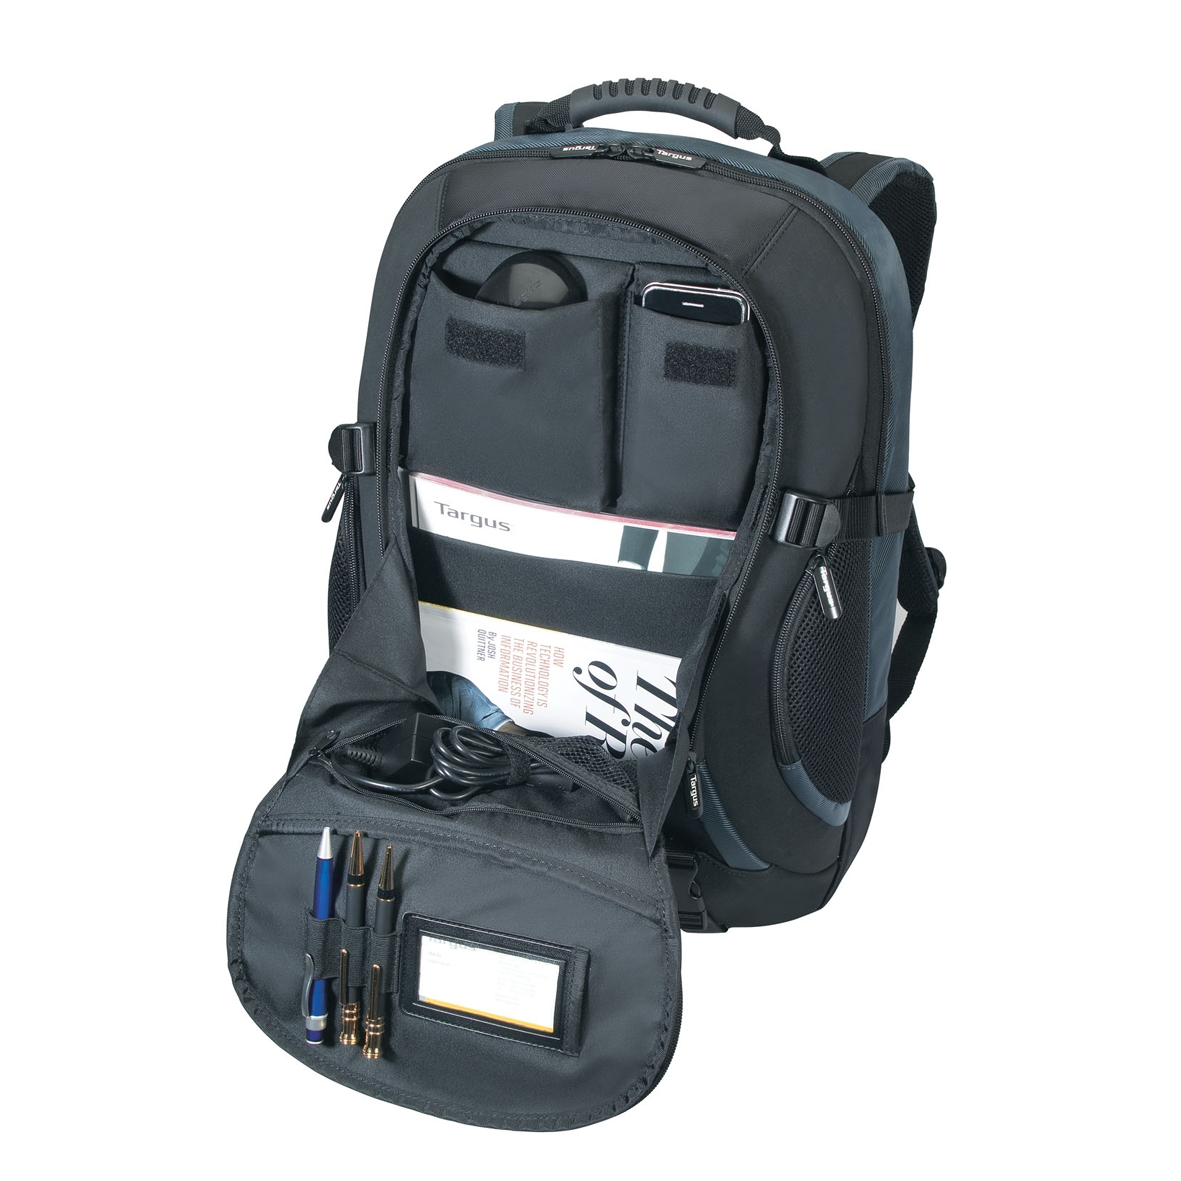 18 Laptop Backpack Bx4br62o